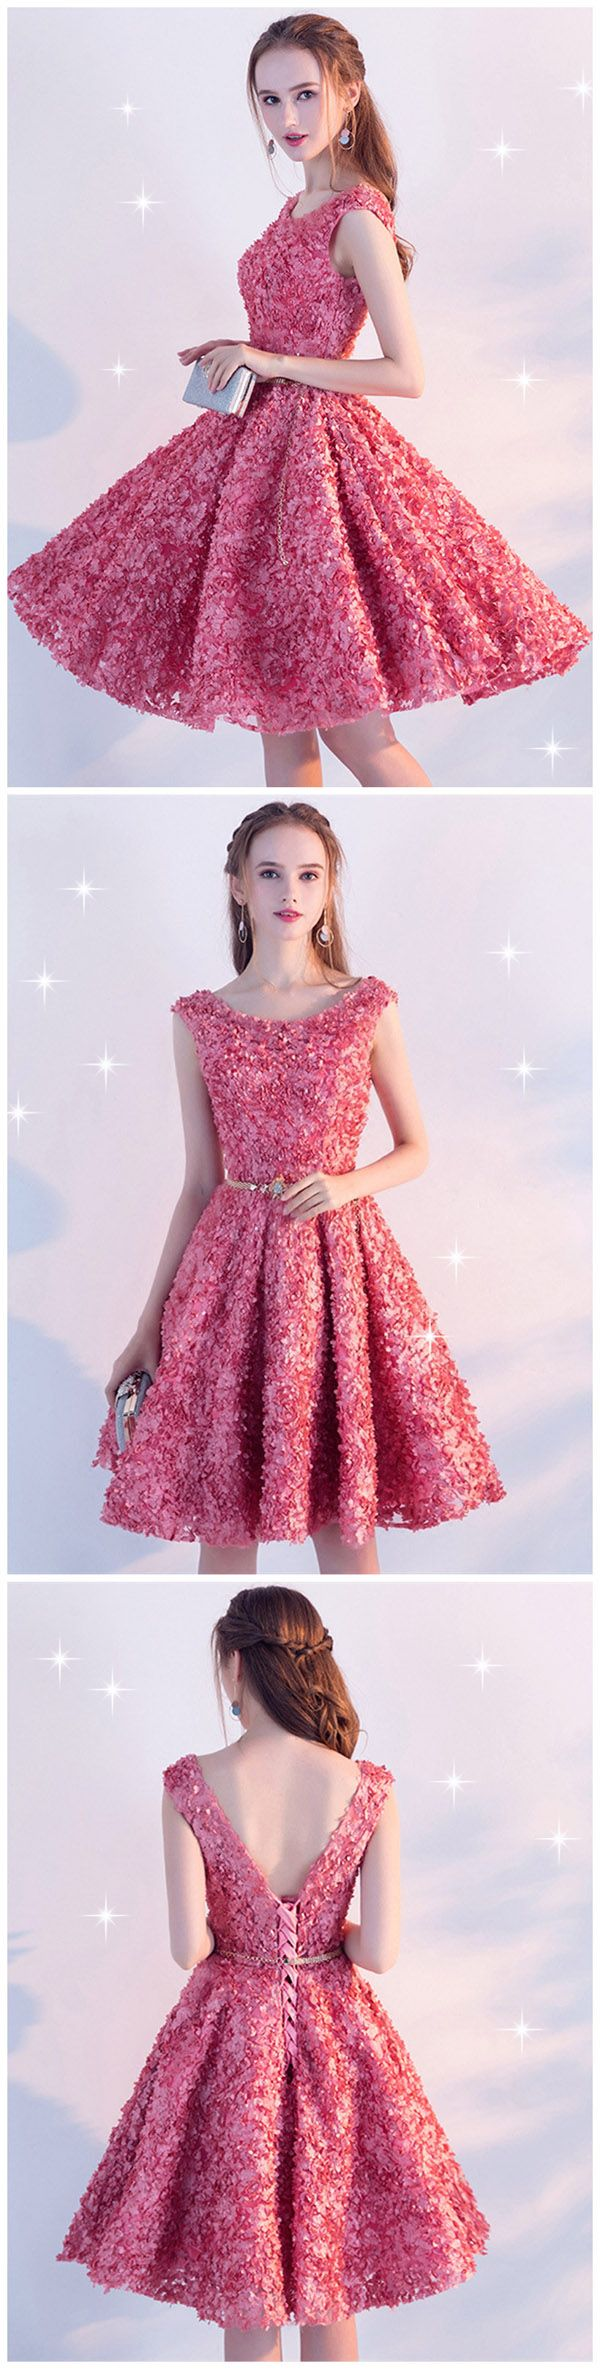 It's back to school season.A-Line Sashes Cap Sleeves Crystal Knee-Length Homecoming Dress. [Material:Lace; Clean:Dry Clean Only; Body Shape:All Sizes; Silhouette:A-Line; Hemline:Knee-Length; Neckline:Scoop; Sleeve Length:Cap Sleeves; Waist:Natural; Back Details:Lace-Up; Embellishments:Flowers,Sashes/Ribbons]